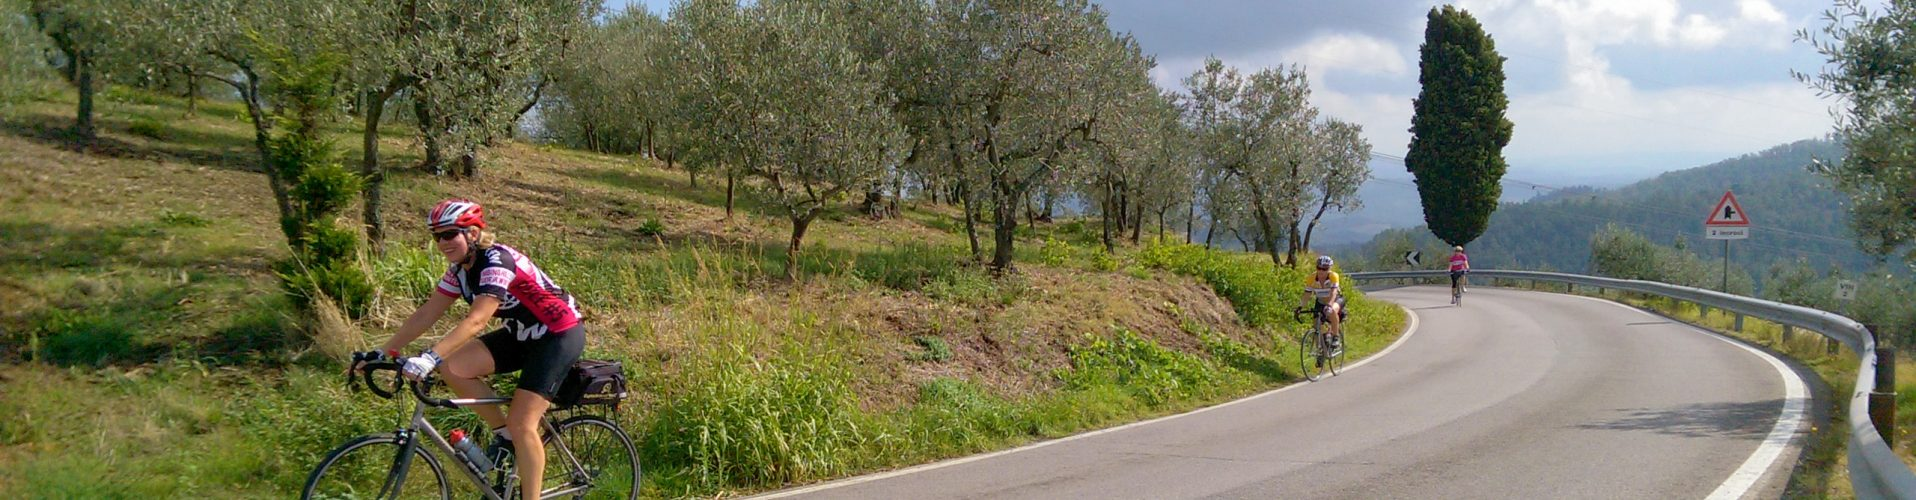 Cycling in Tuscany with BikeRentalsPlus